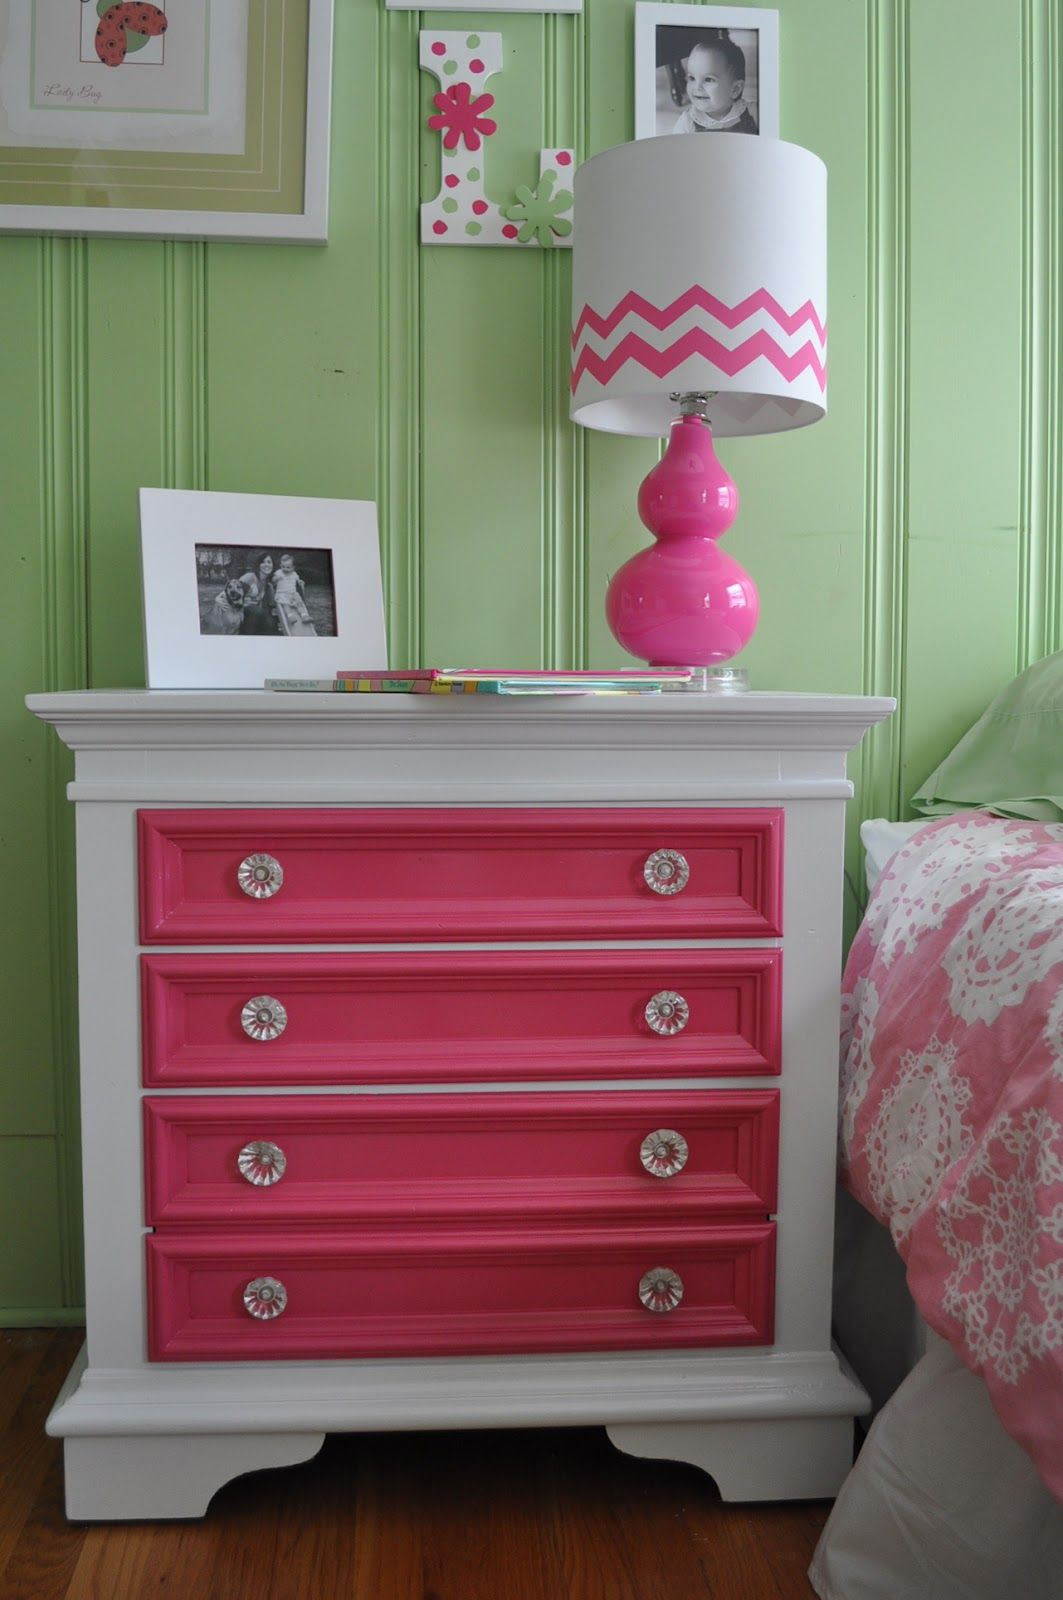 Take a simple dresser and add bright